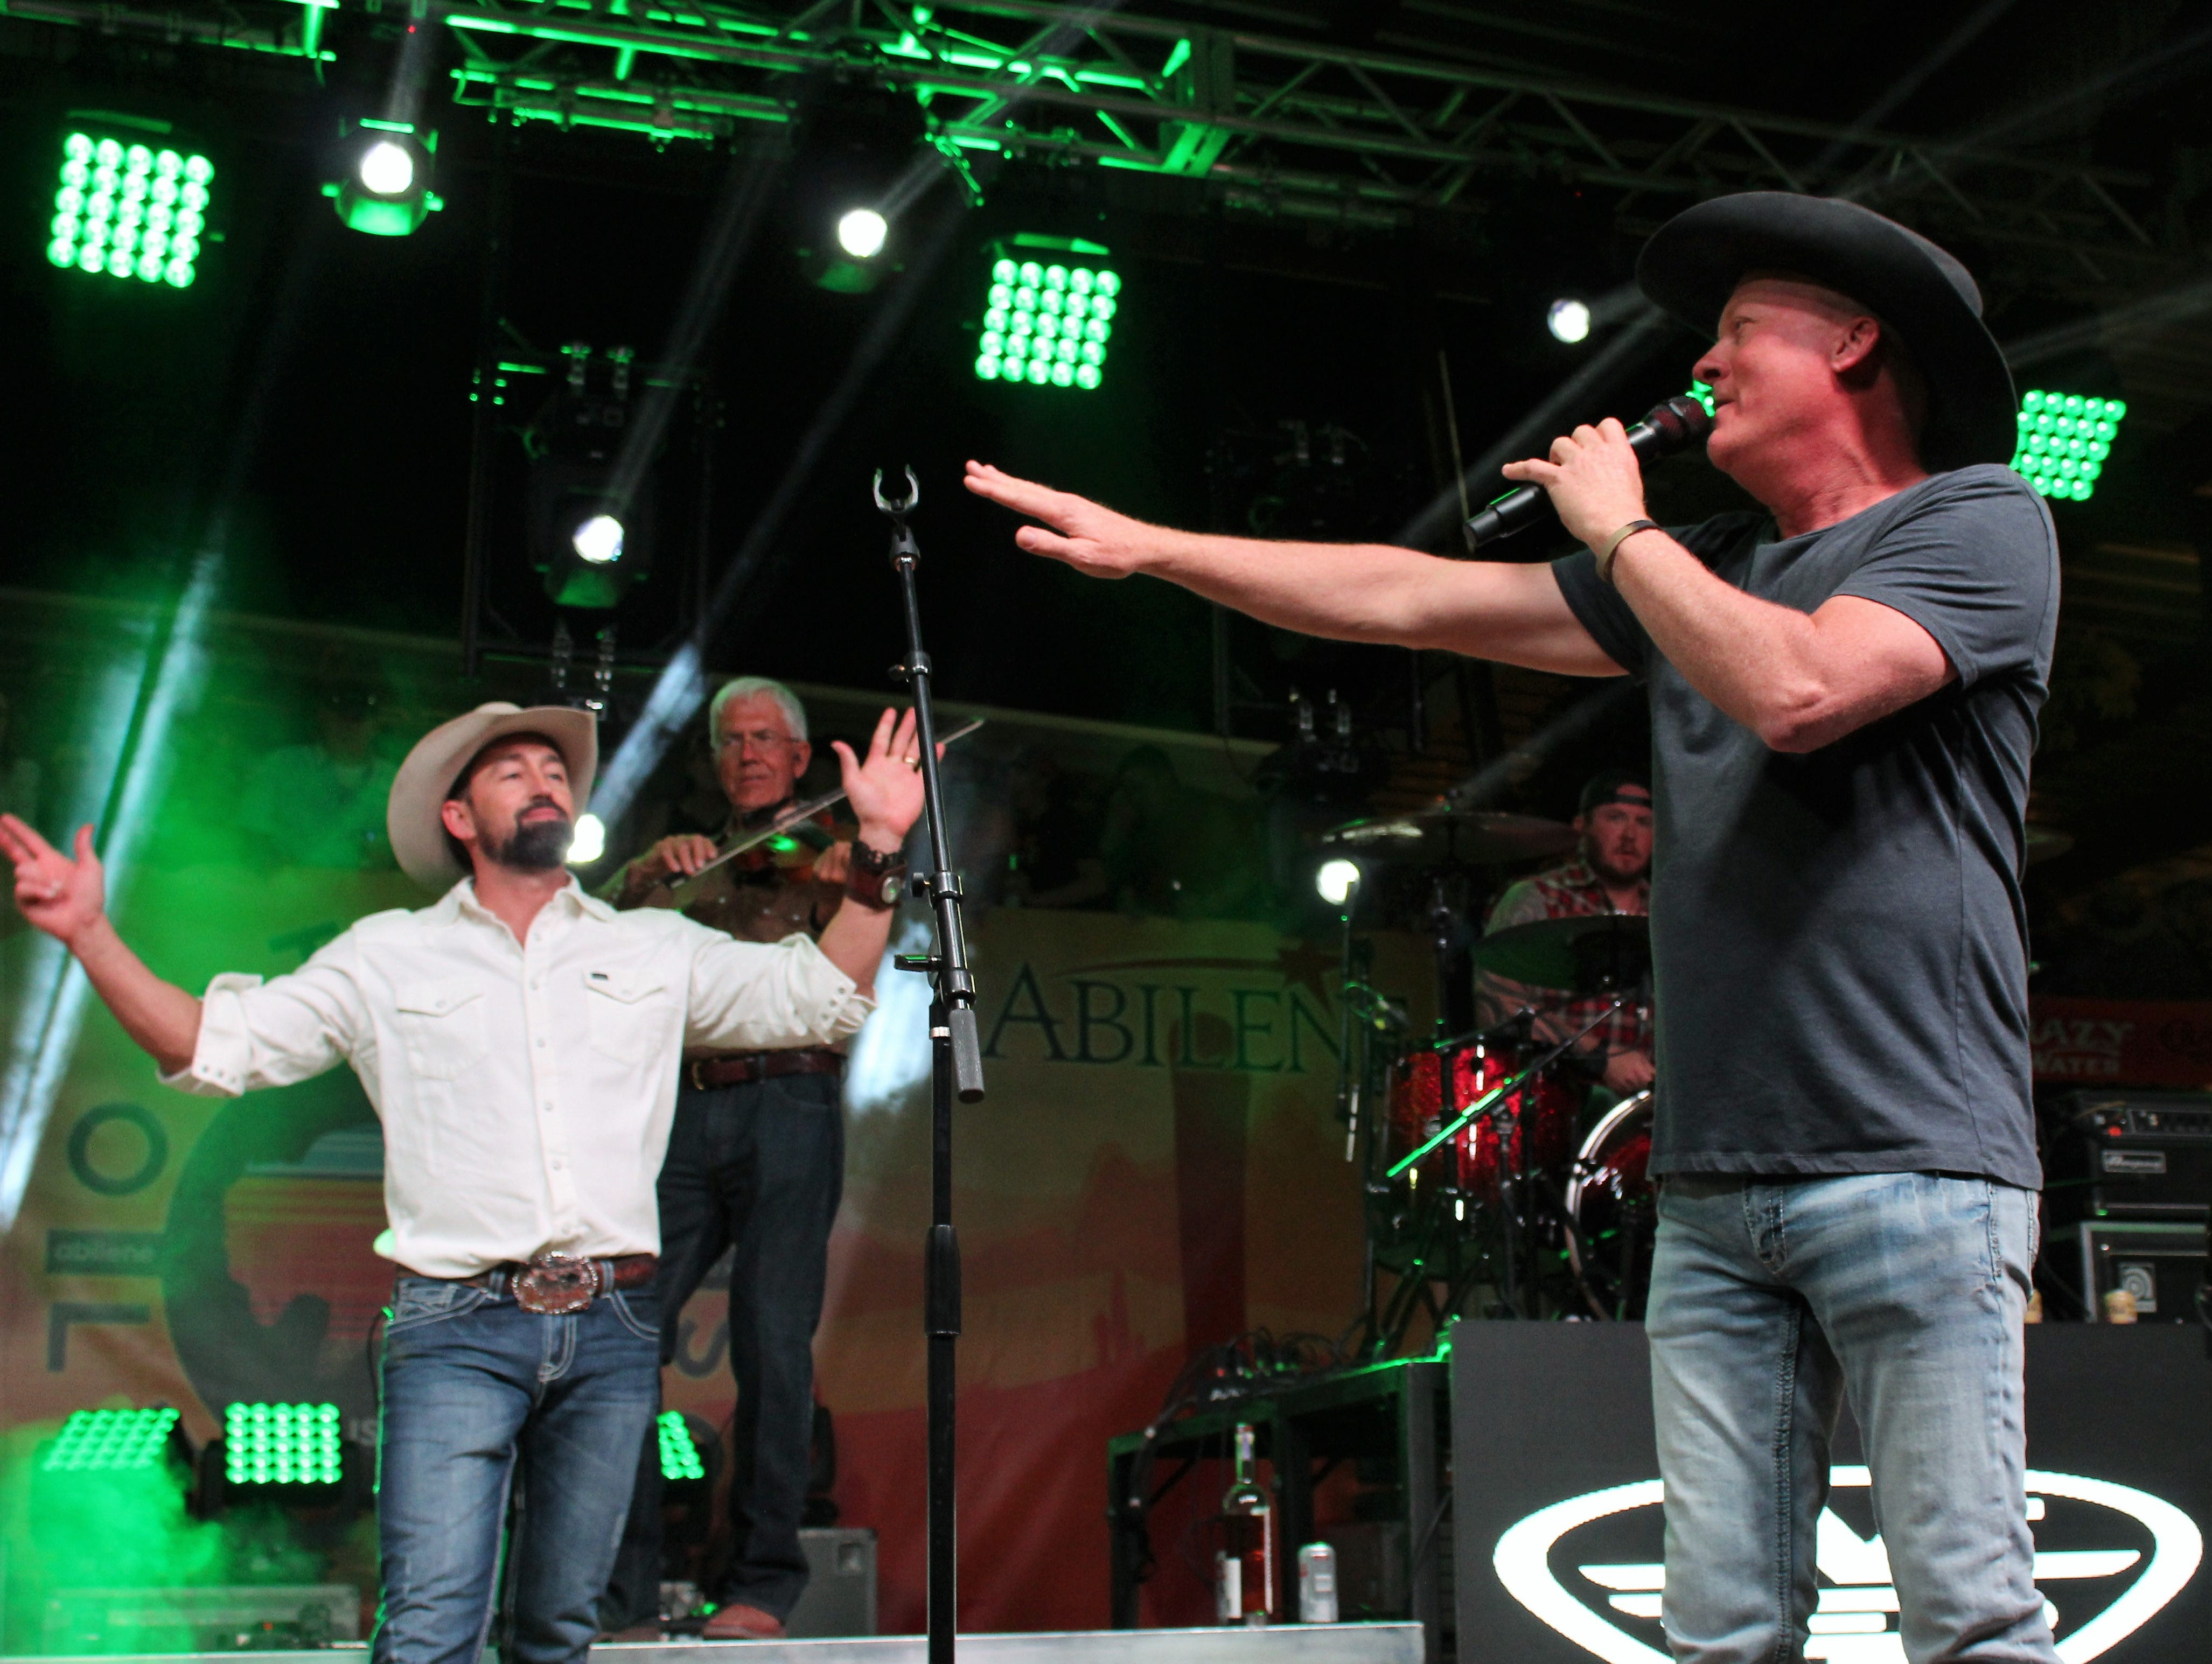 Kevin Fowler stops the band because, he said, he messed up the lyrics while dueting with Mark Powell at Saturday's Outlaws & Legends Music Festival March 23, 2019.